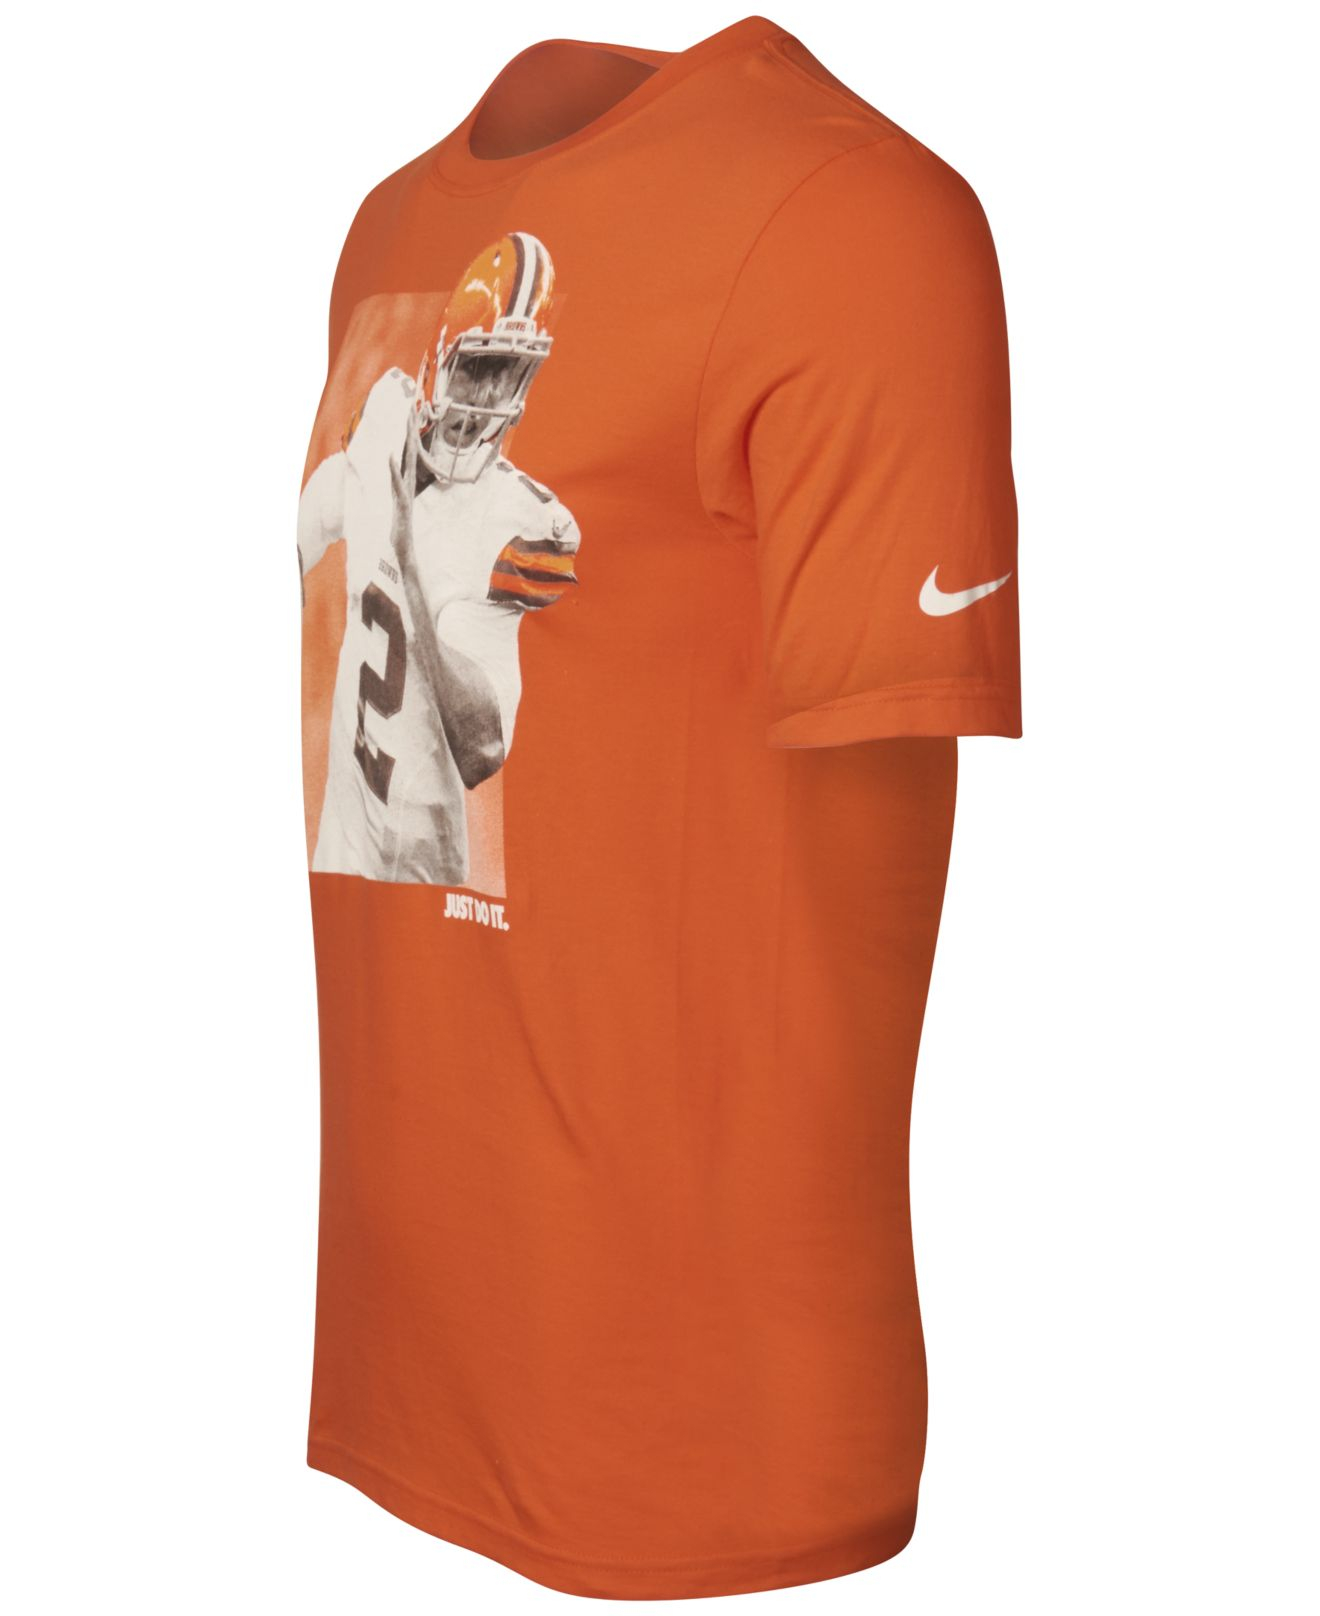 95a8acfed839 Nike Men's Johnny Manziel Cleveland Browns Player Jdi T-shirt in ...